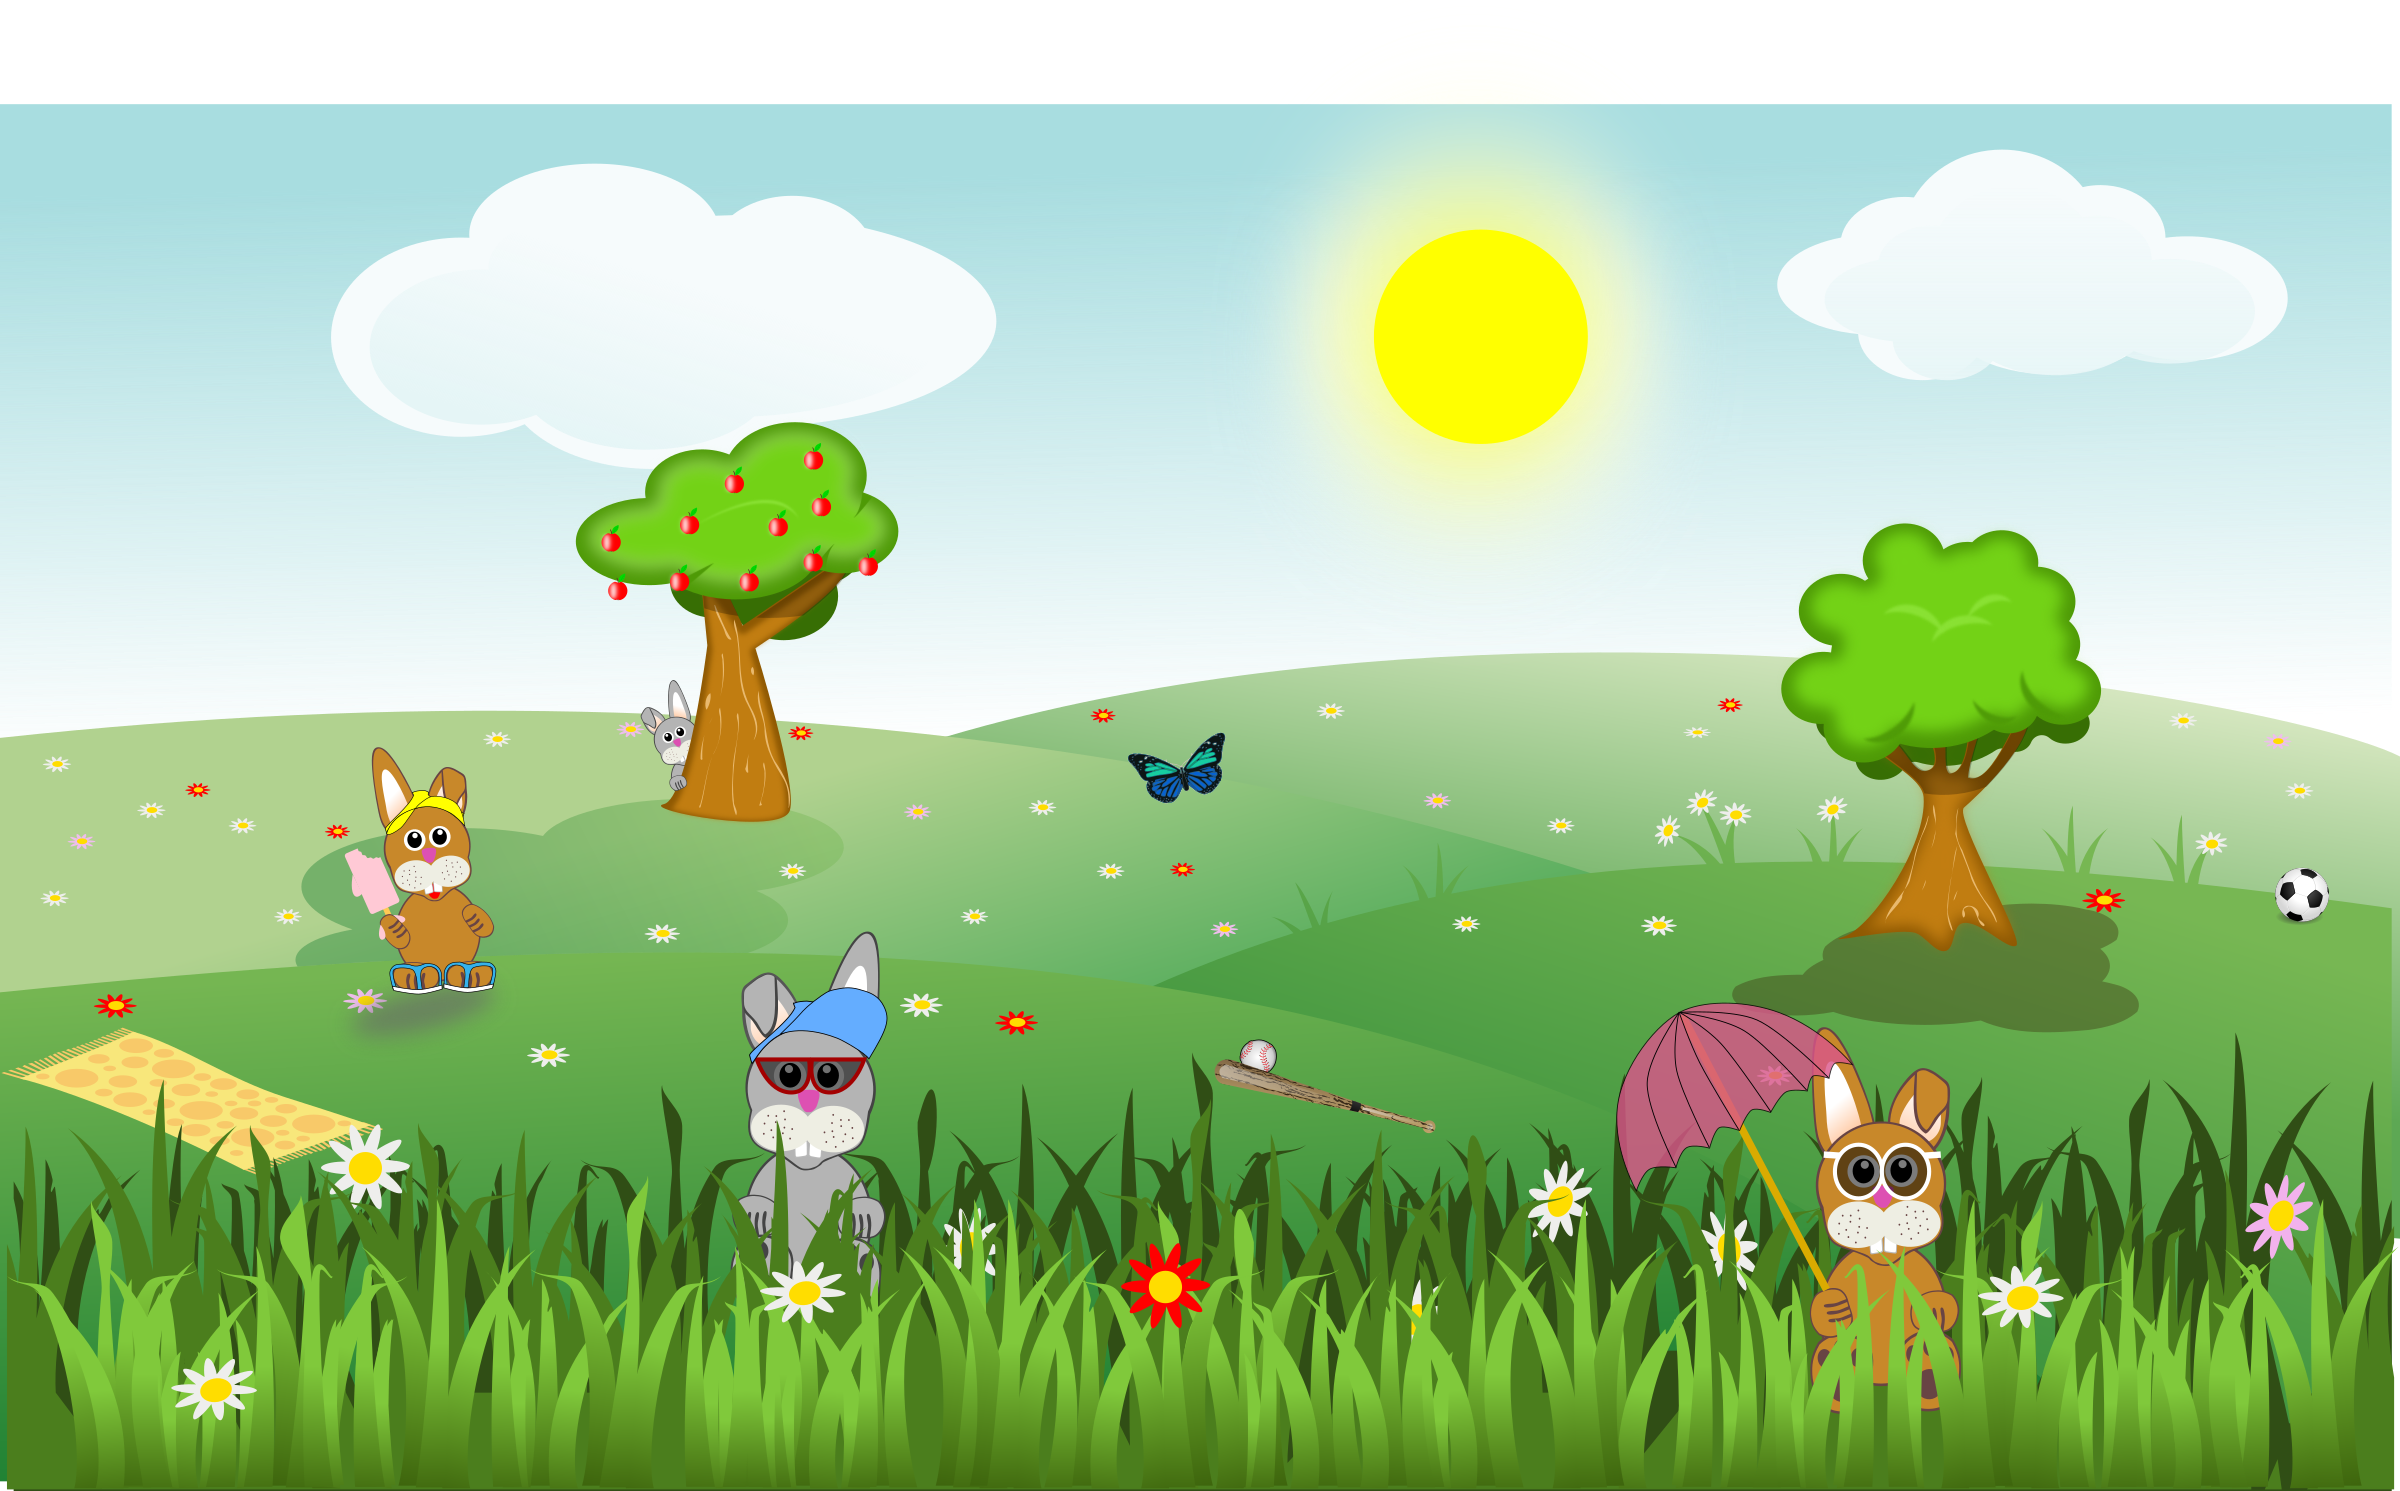 Butterfly tree clipart picture transparent Clipart - Summer green and sunny landscape with bunnies, trees ... picture transparent